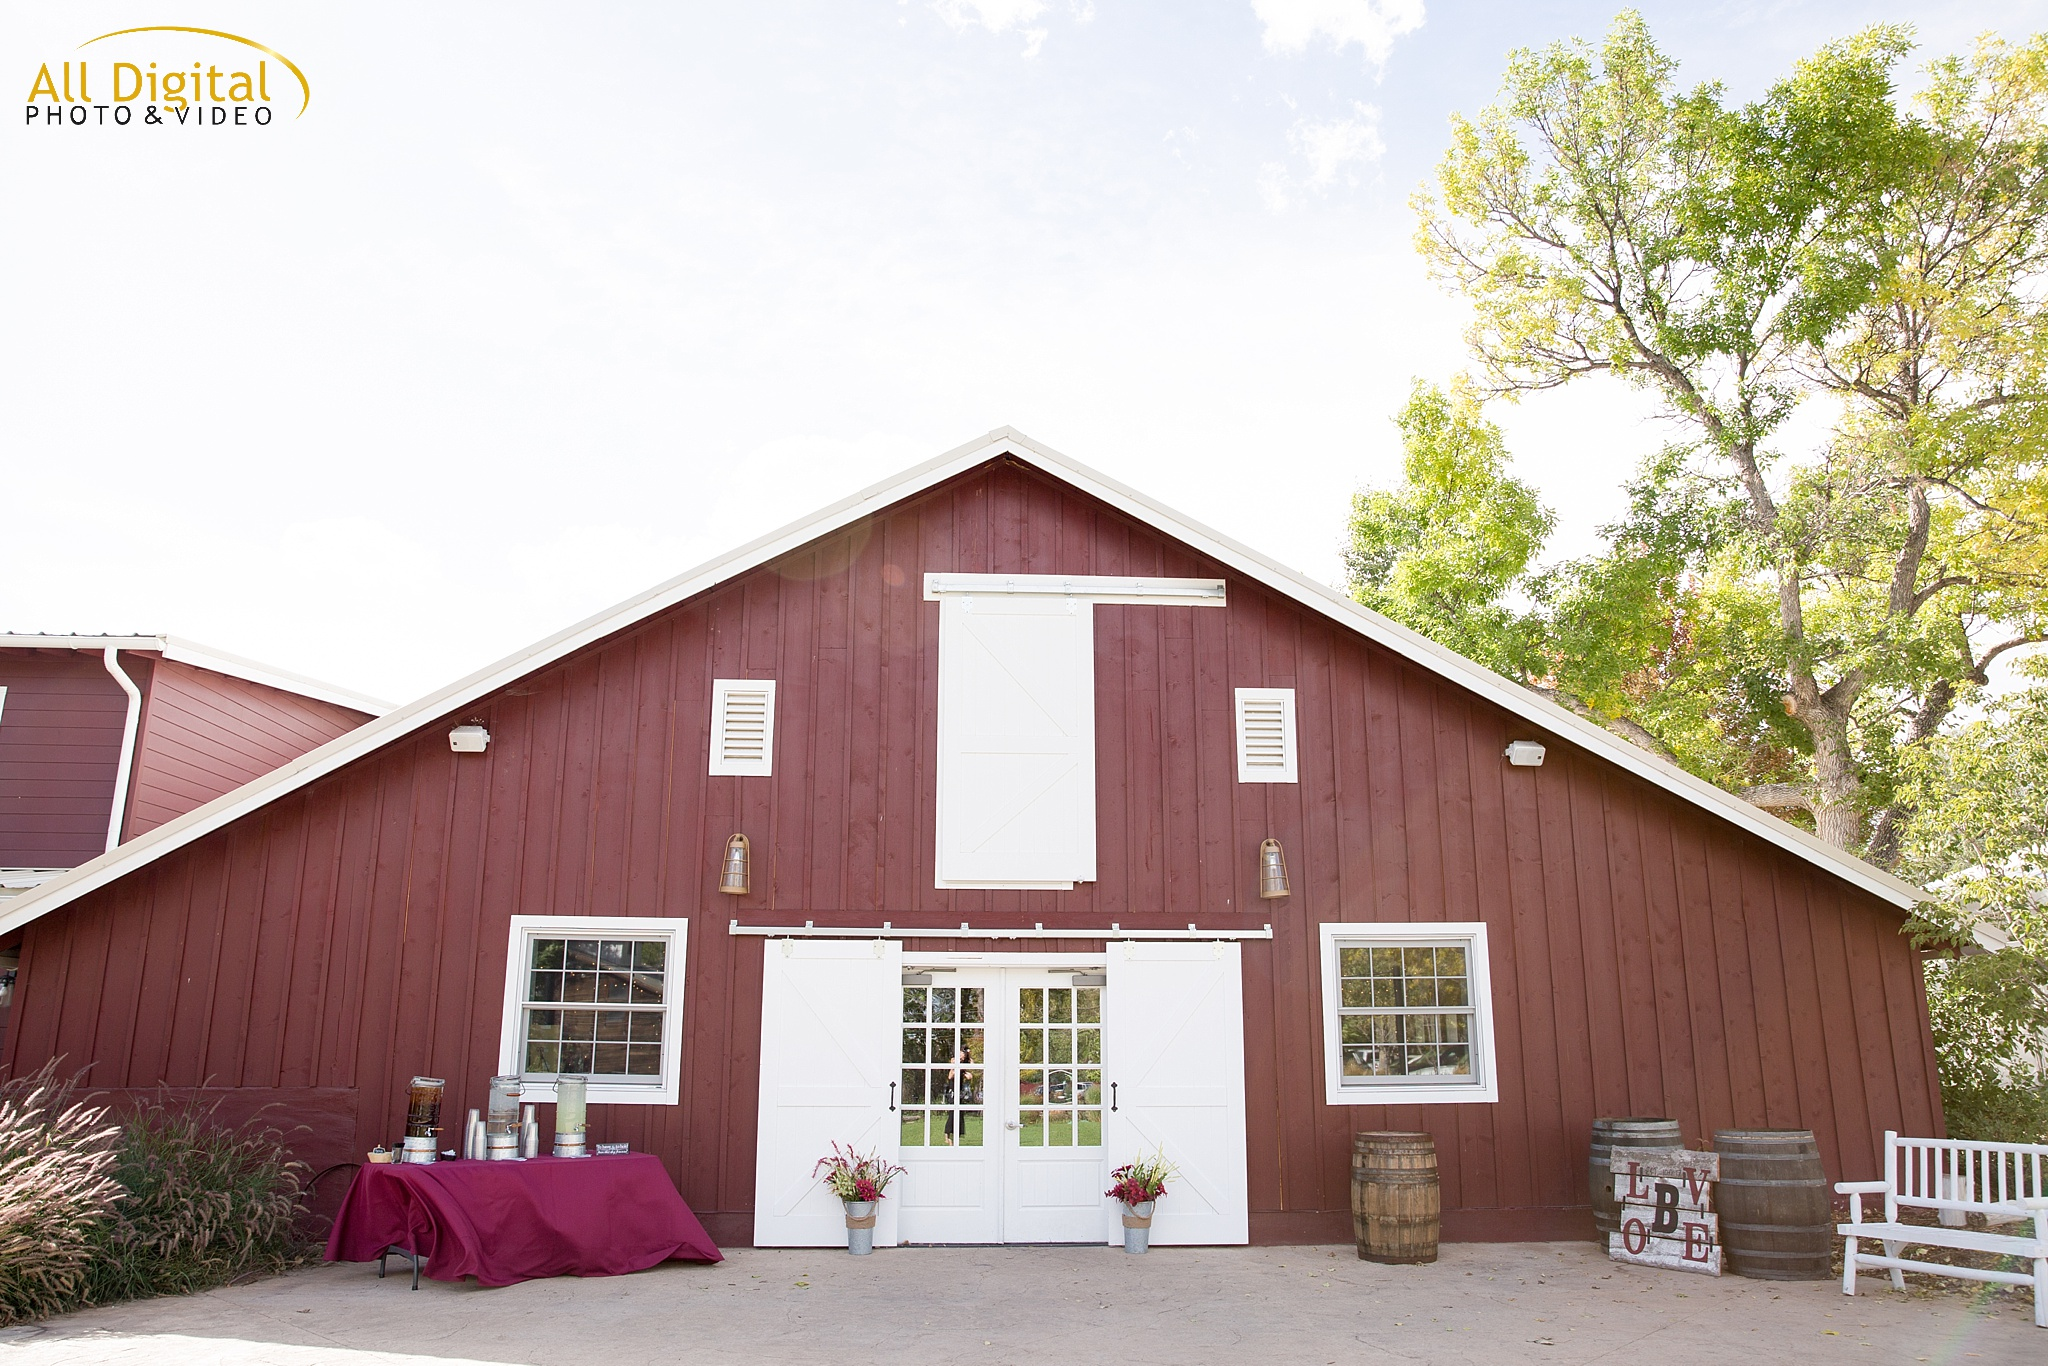 Tina & Nathan's Colorado Wedding at the Barn at Raccoon Creek